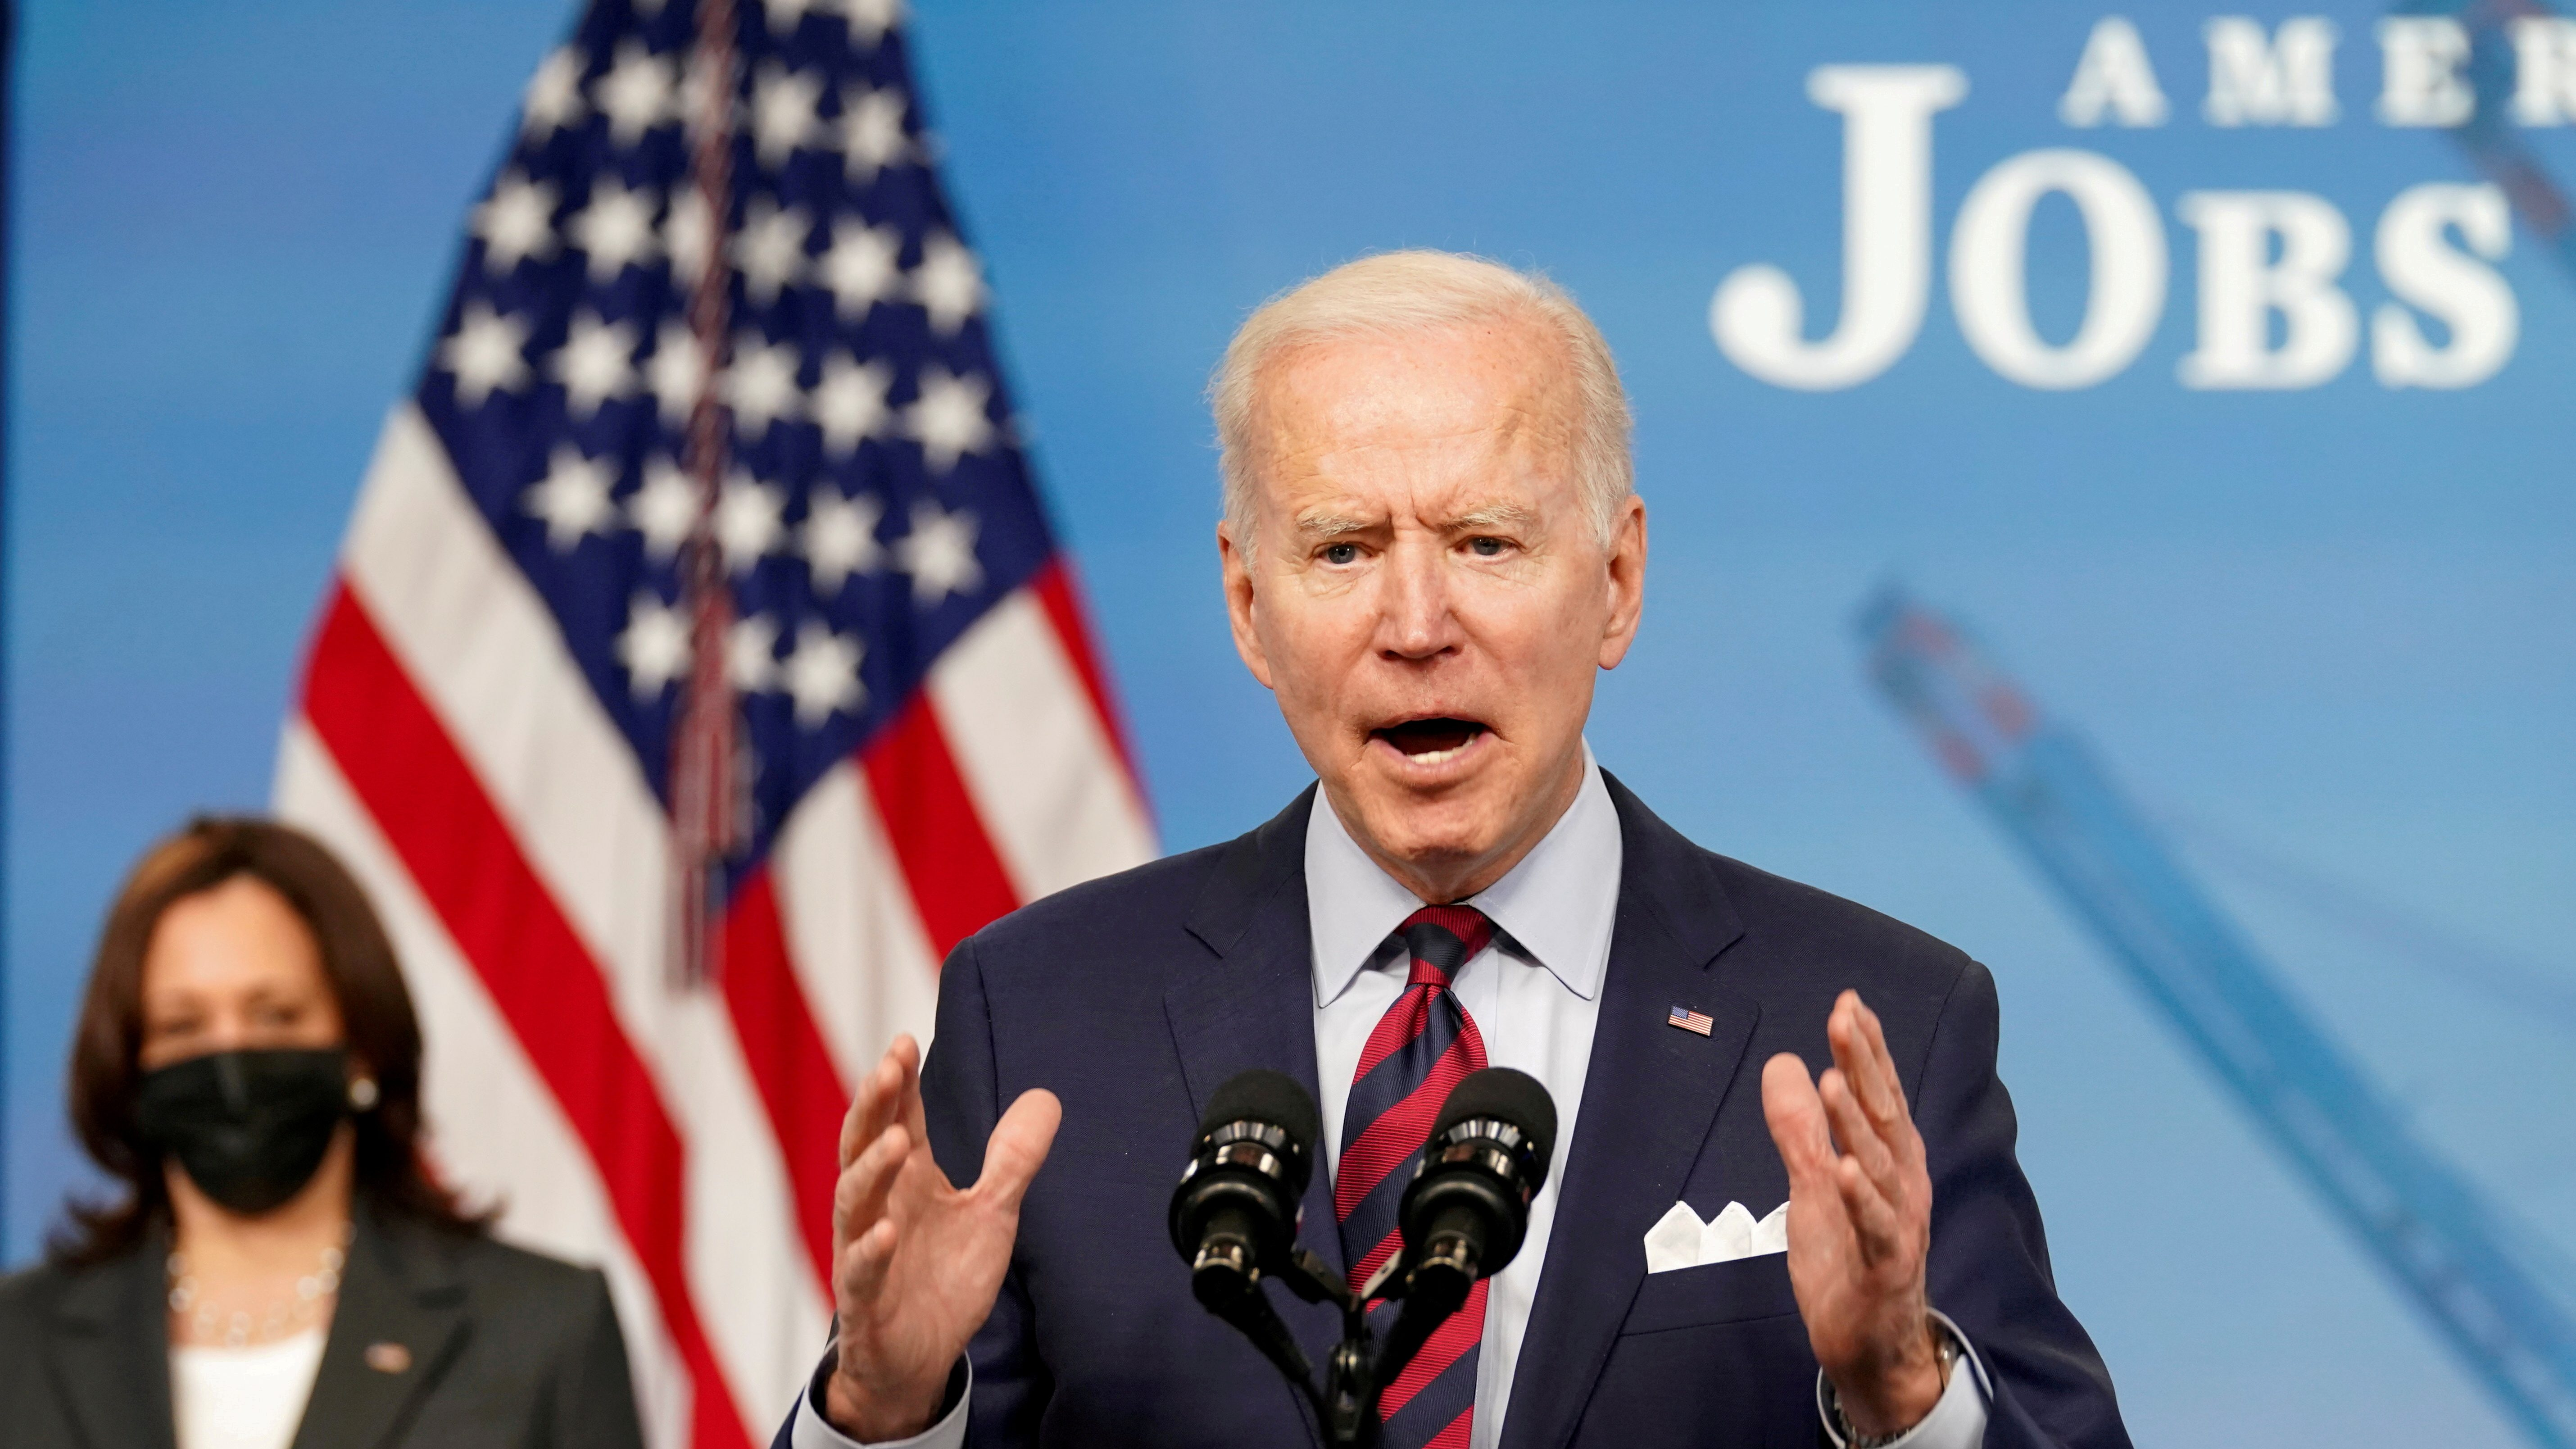 President Biden speaks about jobs and the economy at the White House